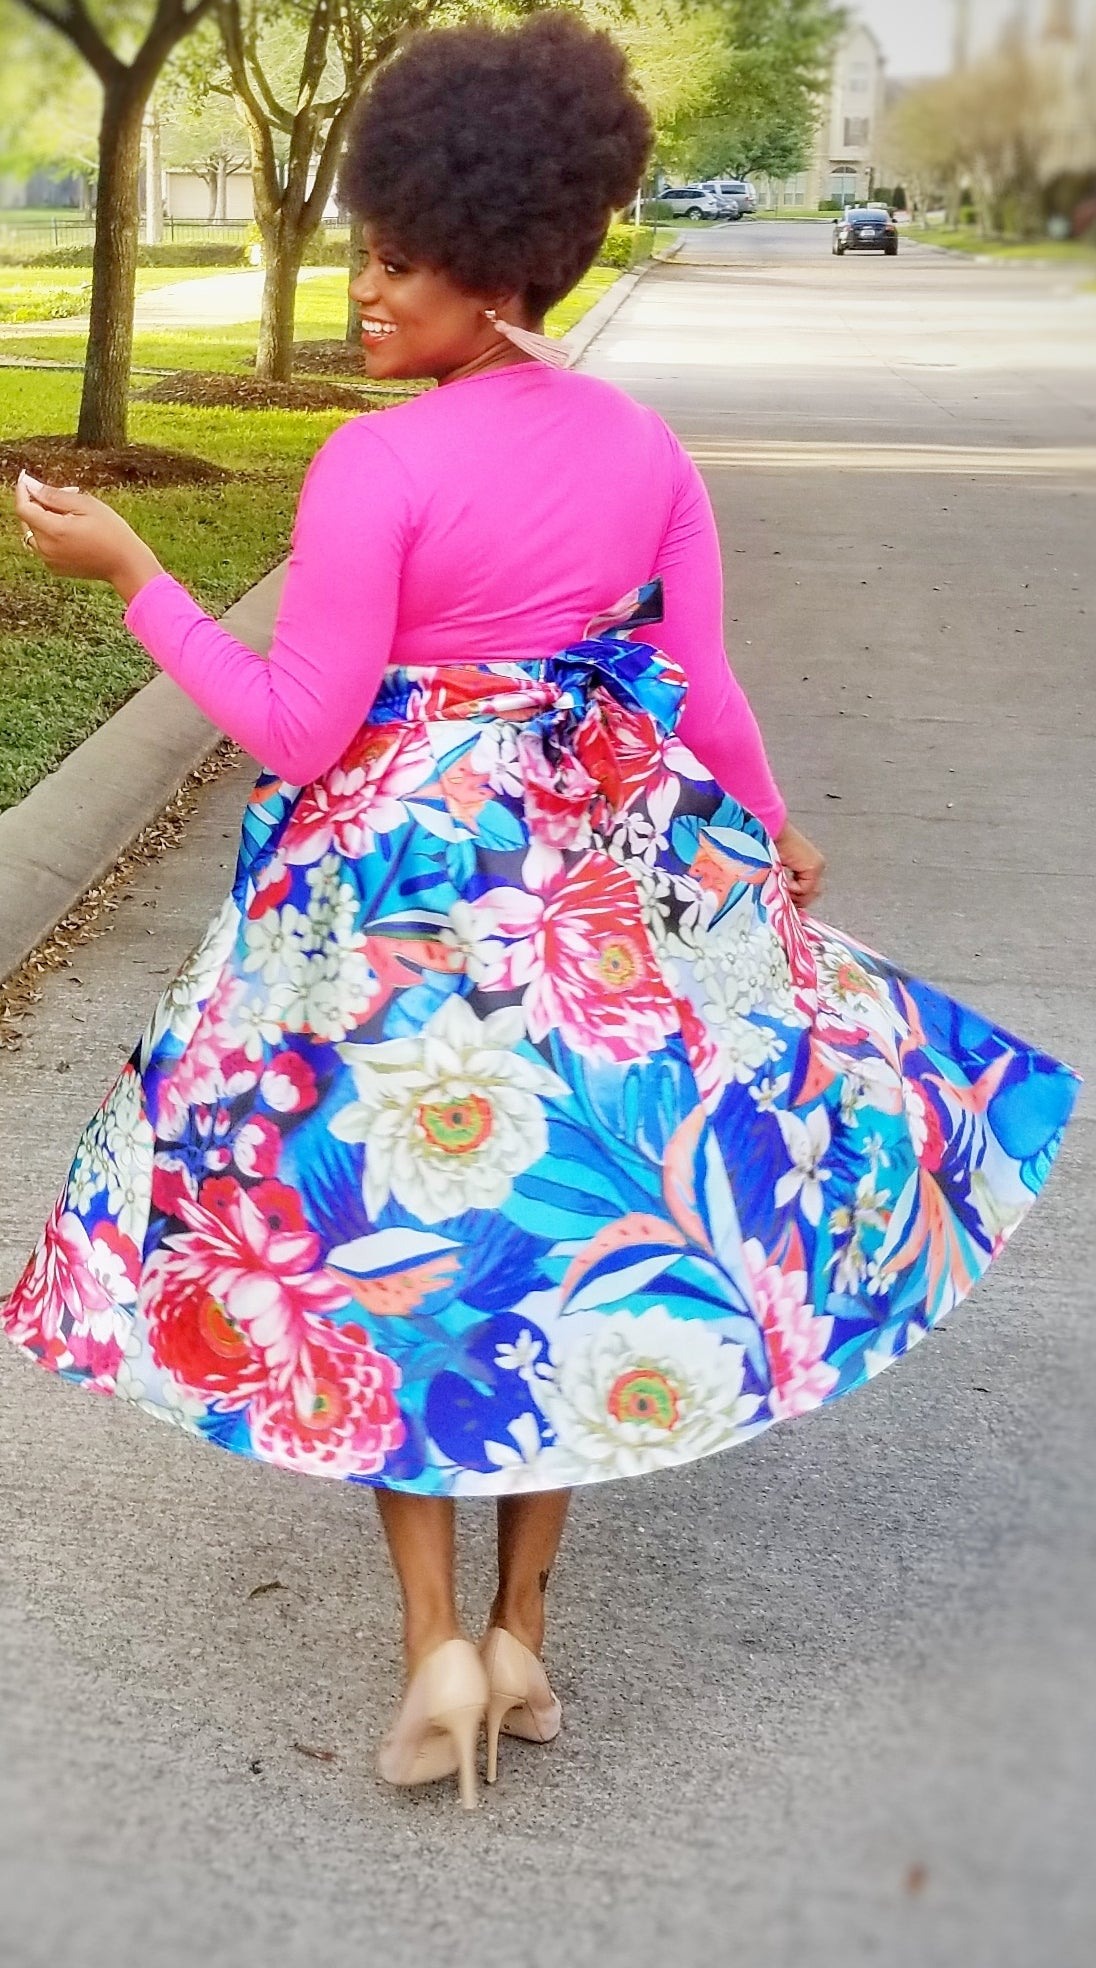 Floral Fields Skirt  - ONLY 1 LEFT!